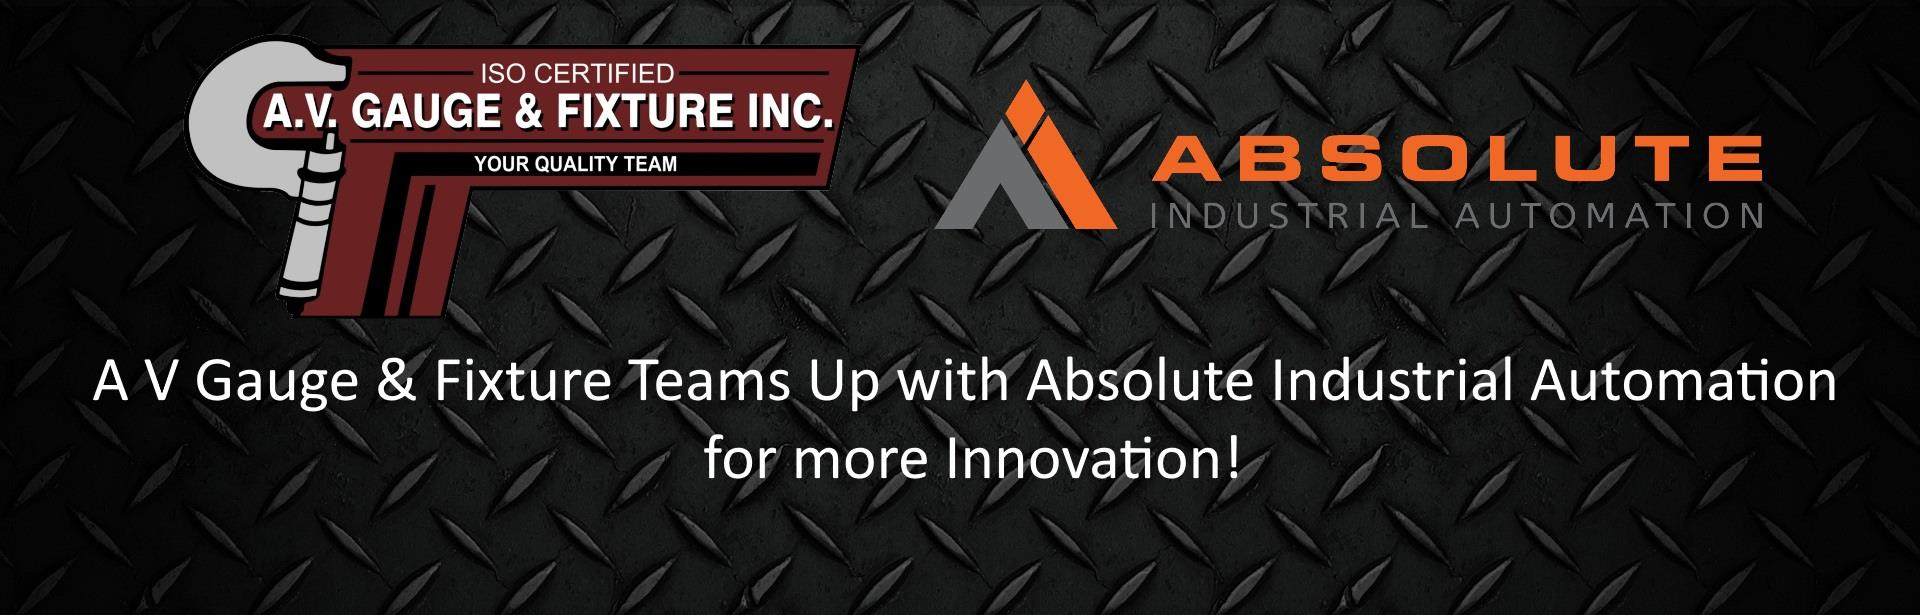 A V Gauge & Fixture Inc. Teams Up with Absolute Industrial Automation.